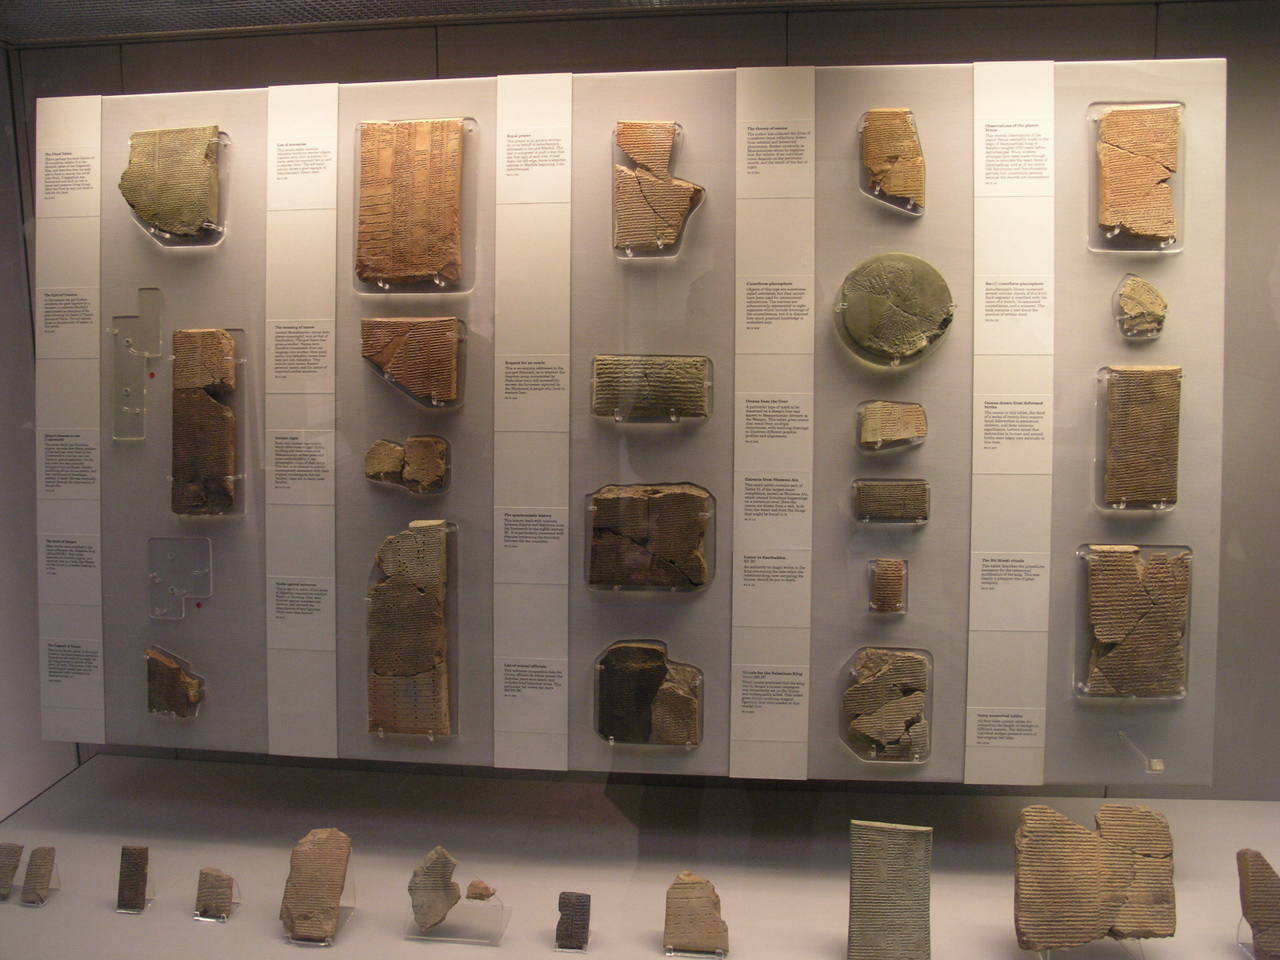 British Museum, London, England, Cuneiform Tablets Display